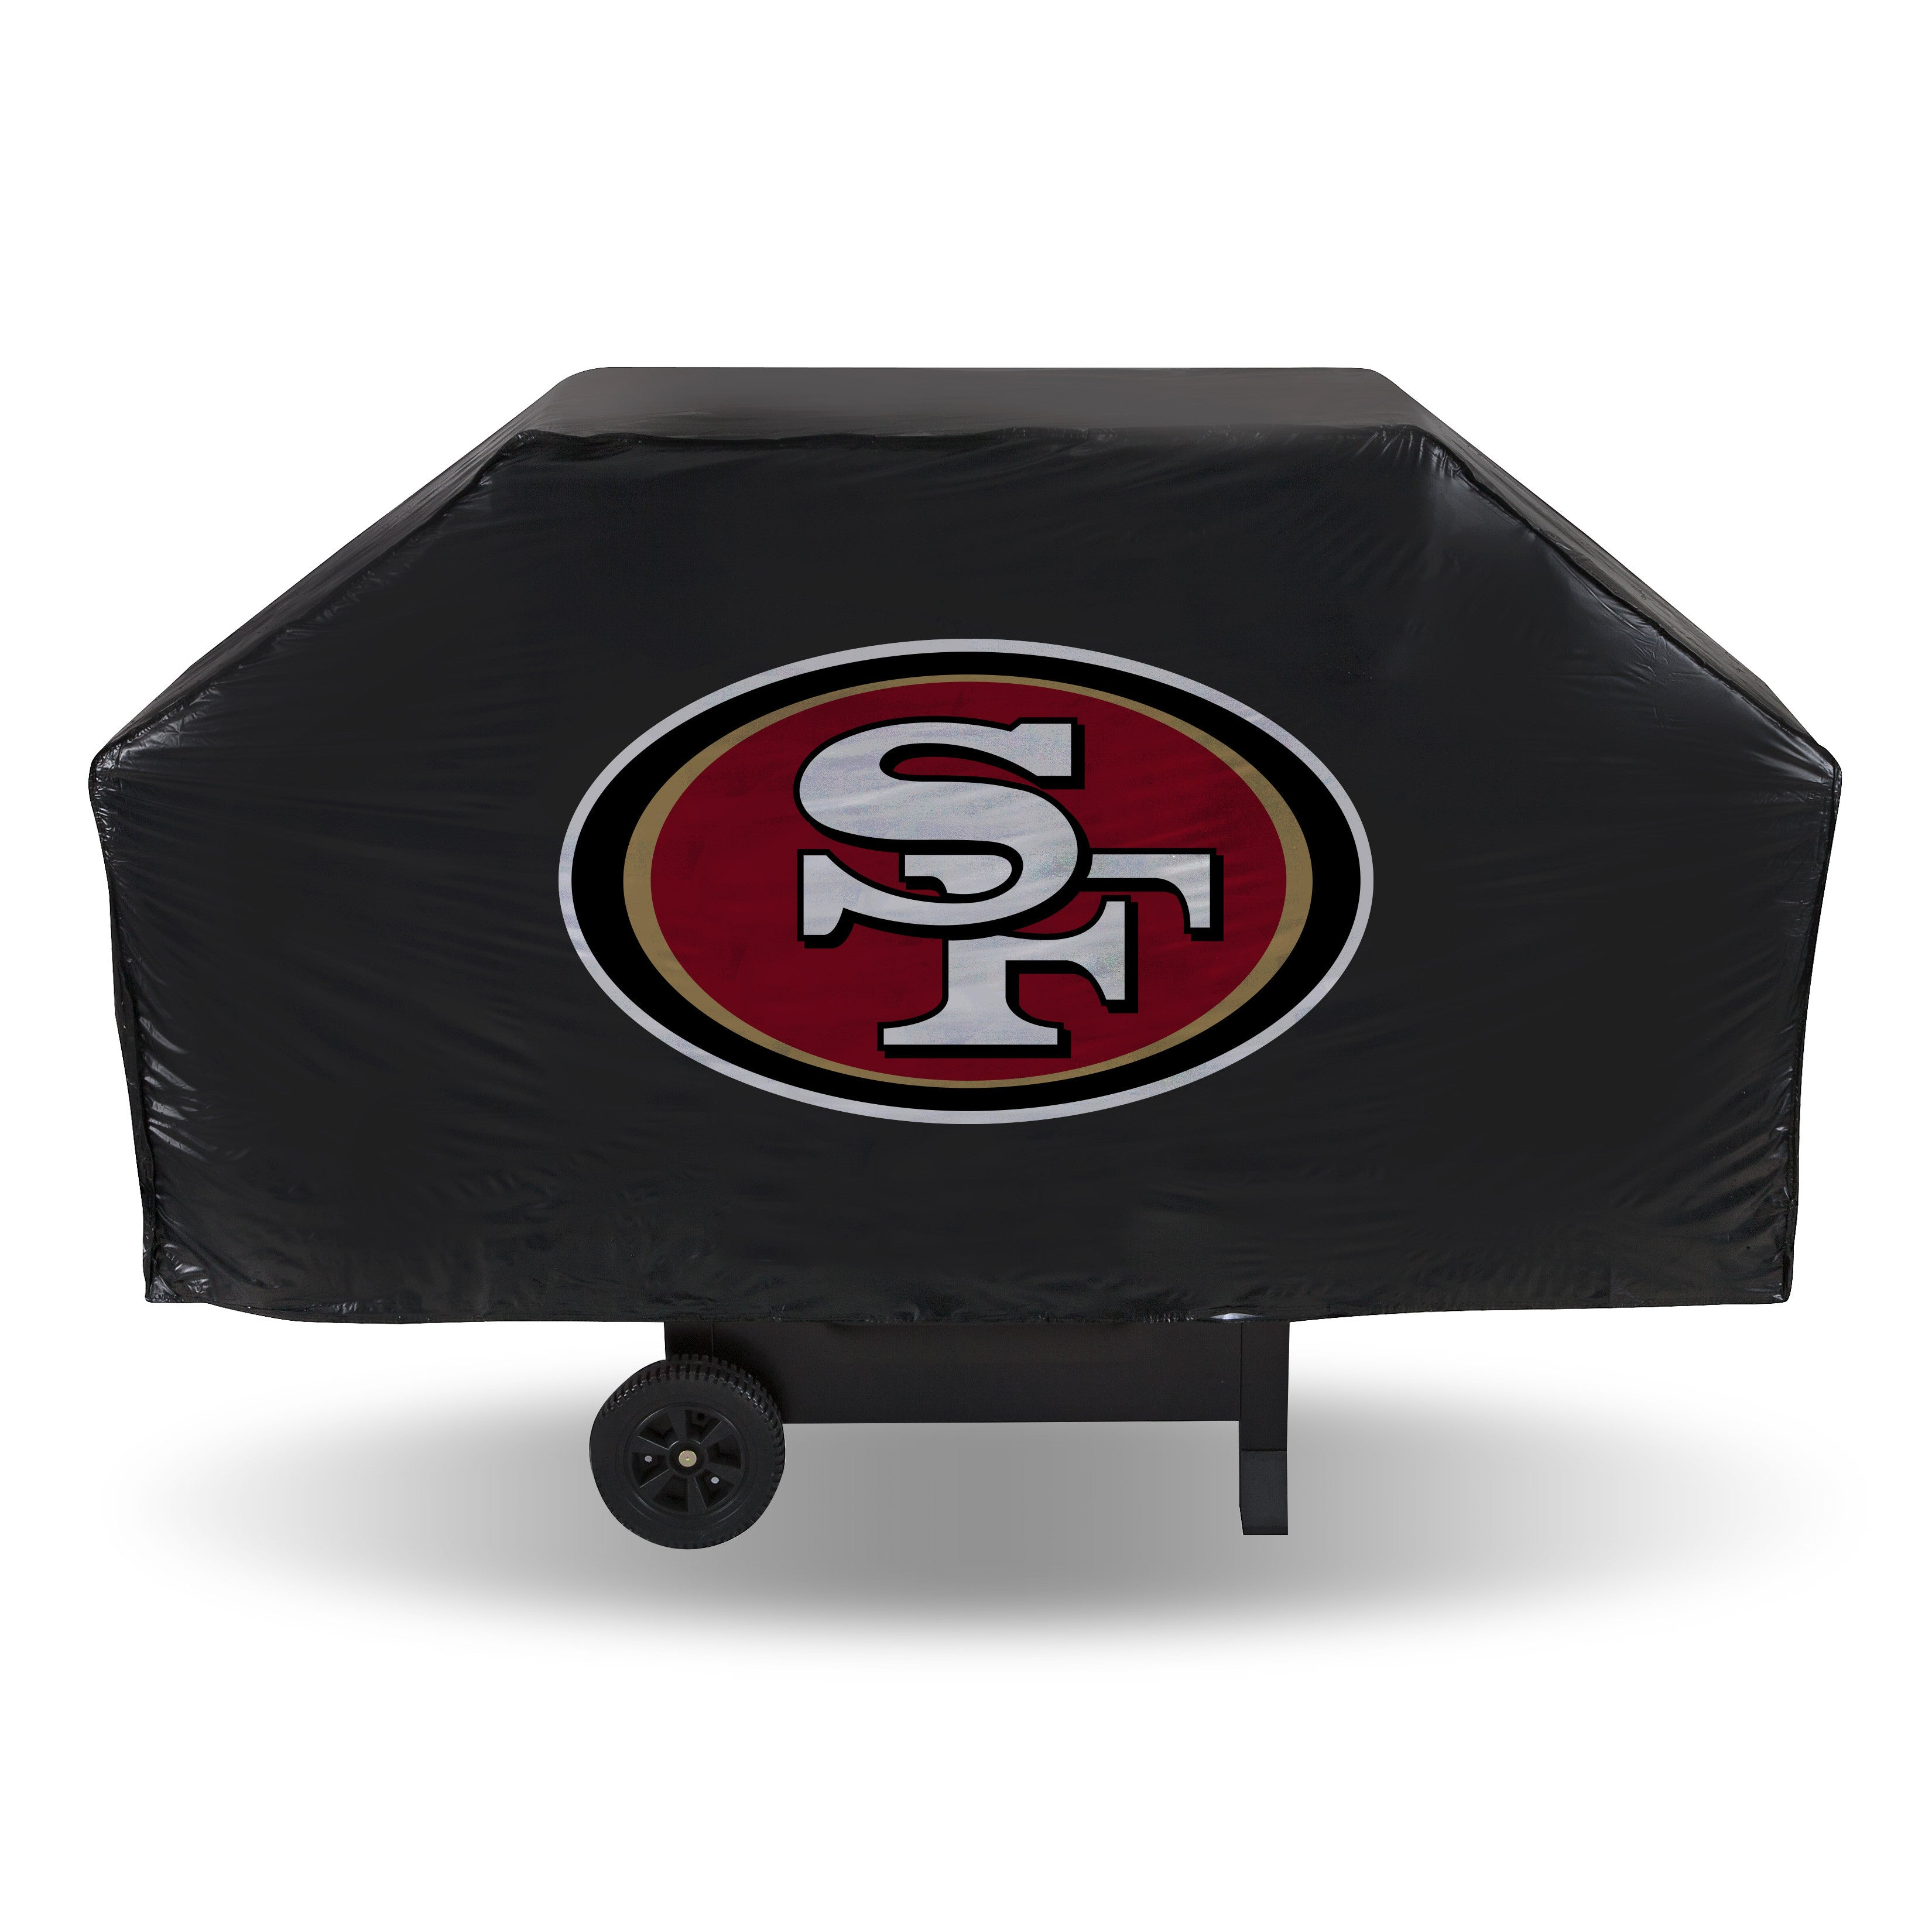 NFL San Francisco 49ers Economy Grill Cover